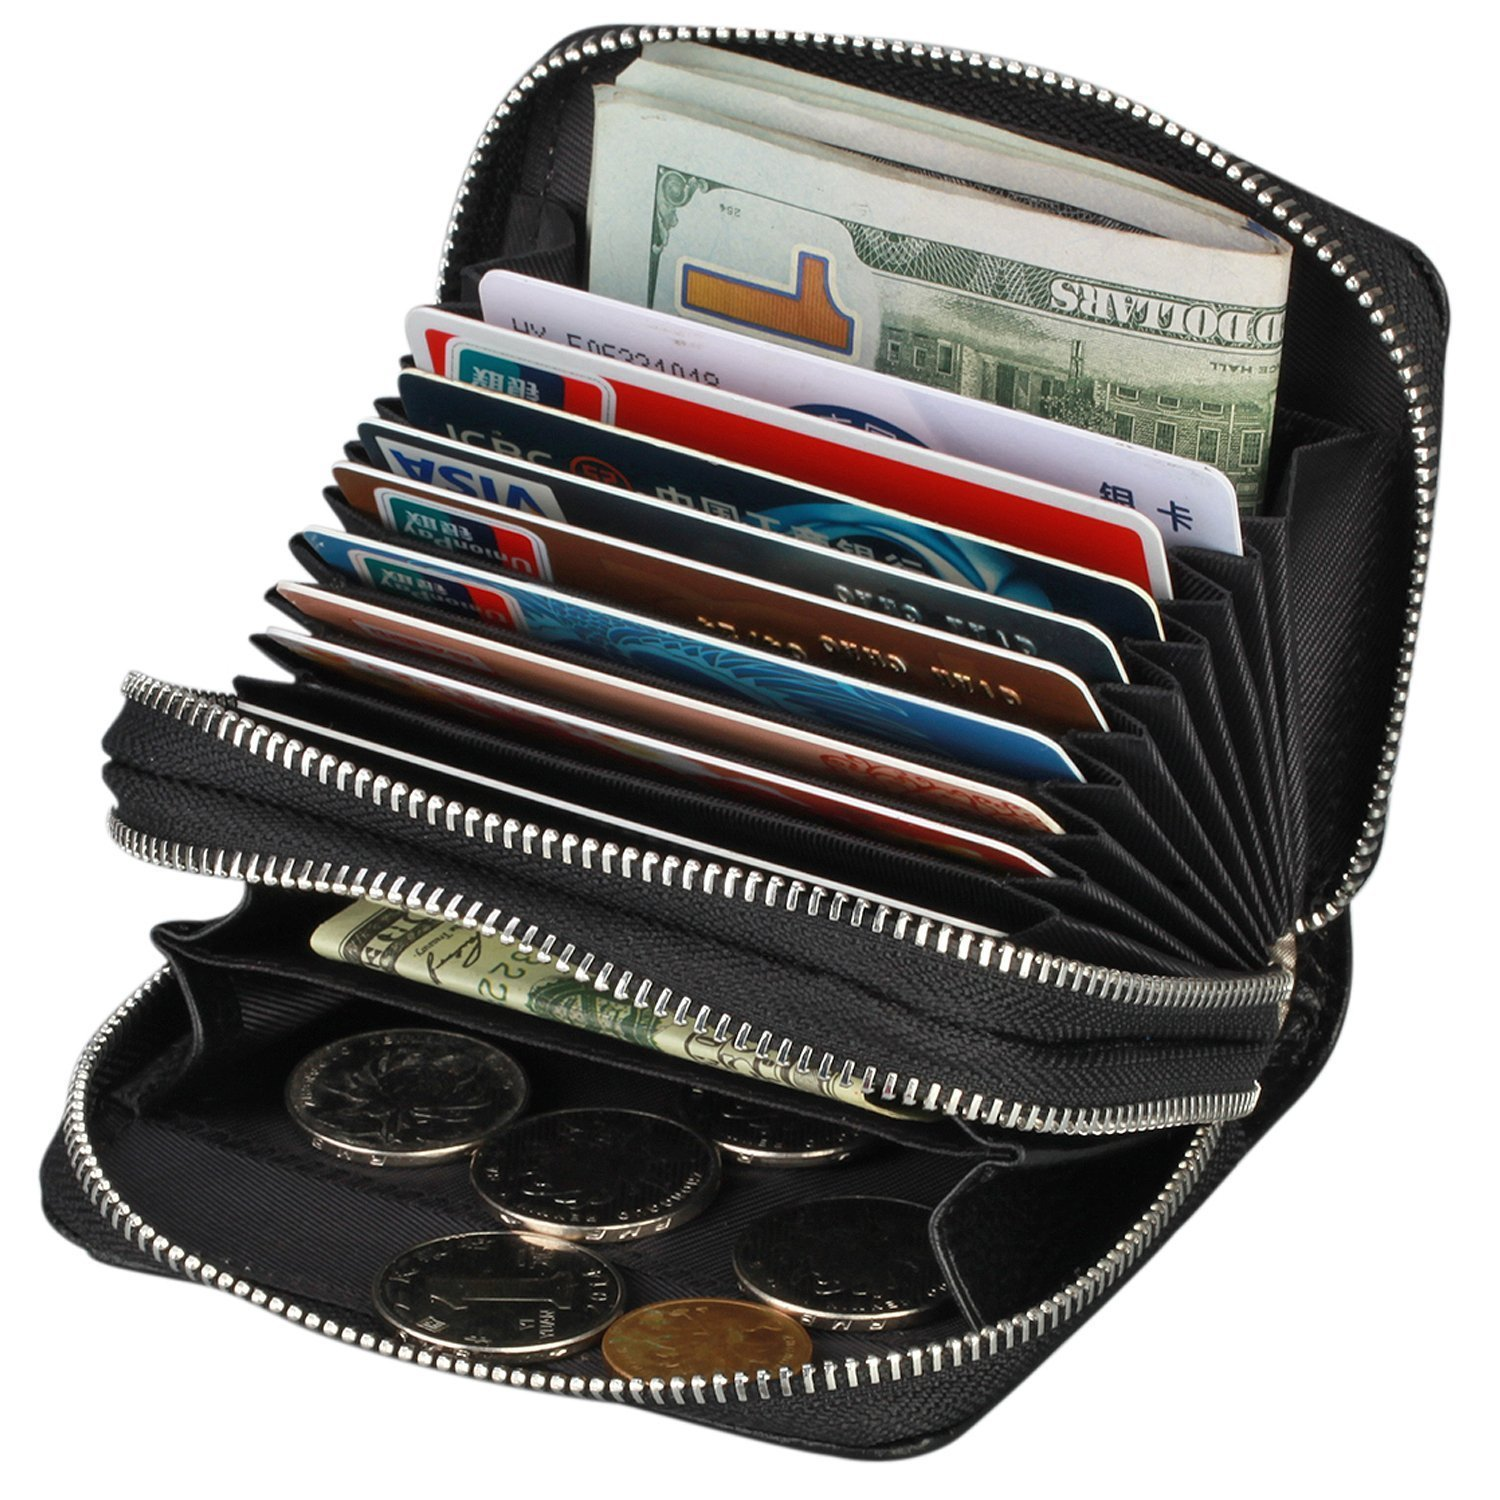 TraderPlus Women's RFID Blocking Leather Zipper Card Wallet Small Purse Credit Card Case Holder for Christmas Gift (Black)